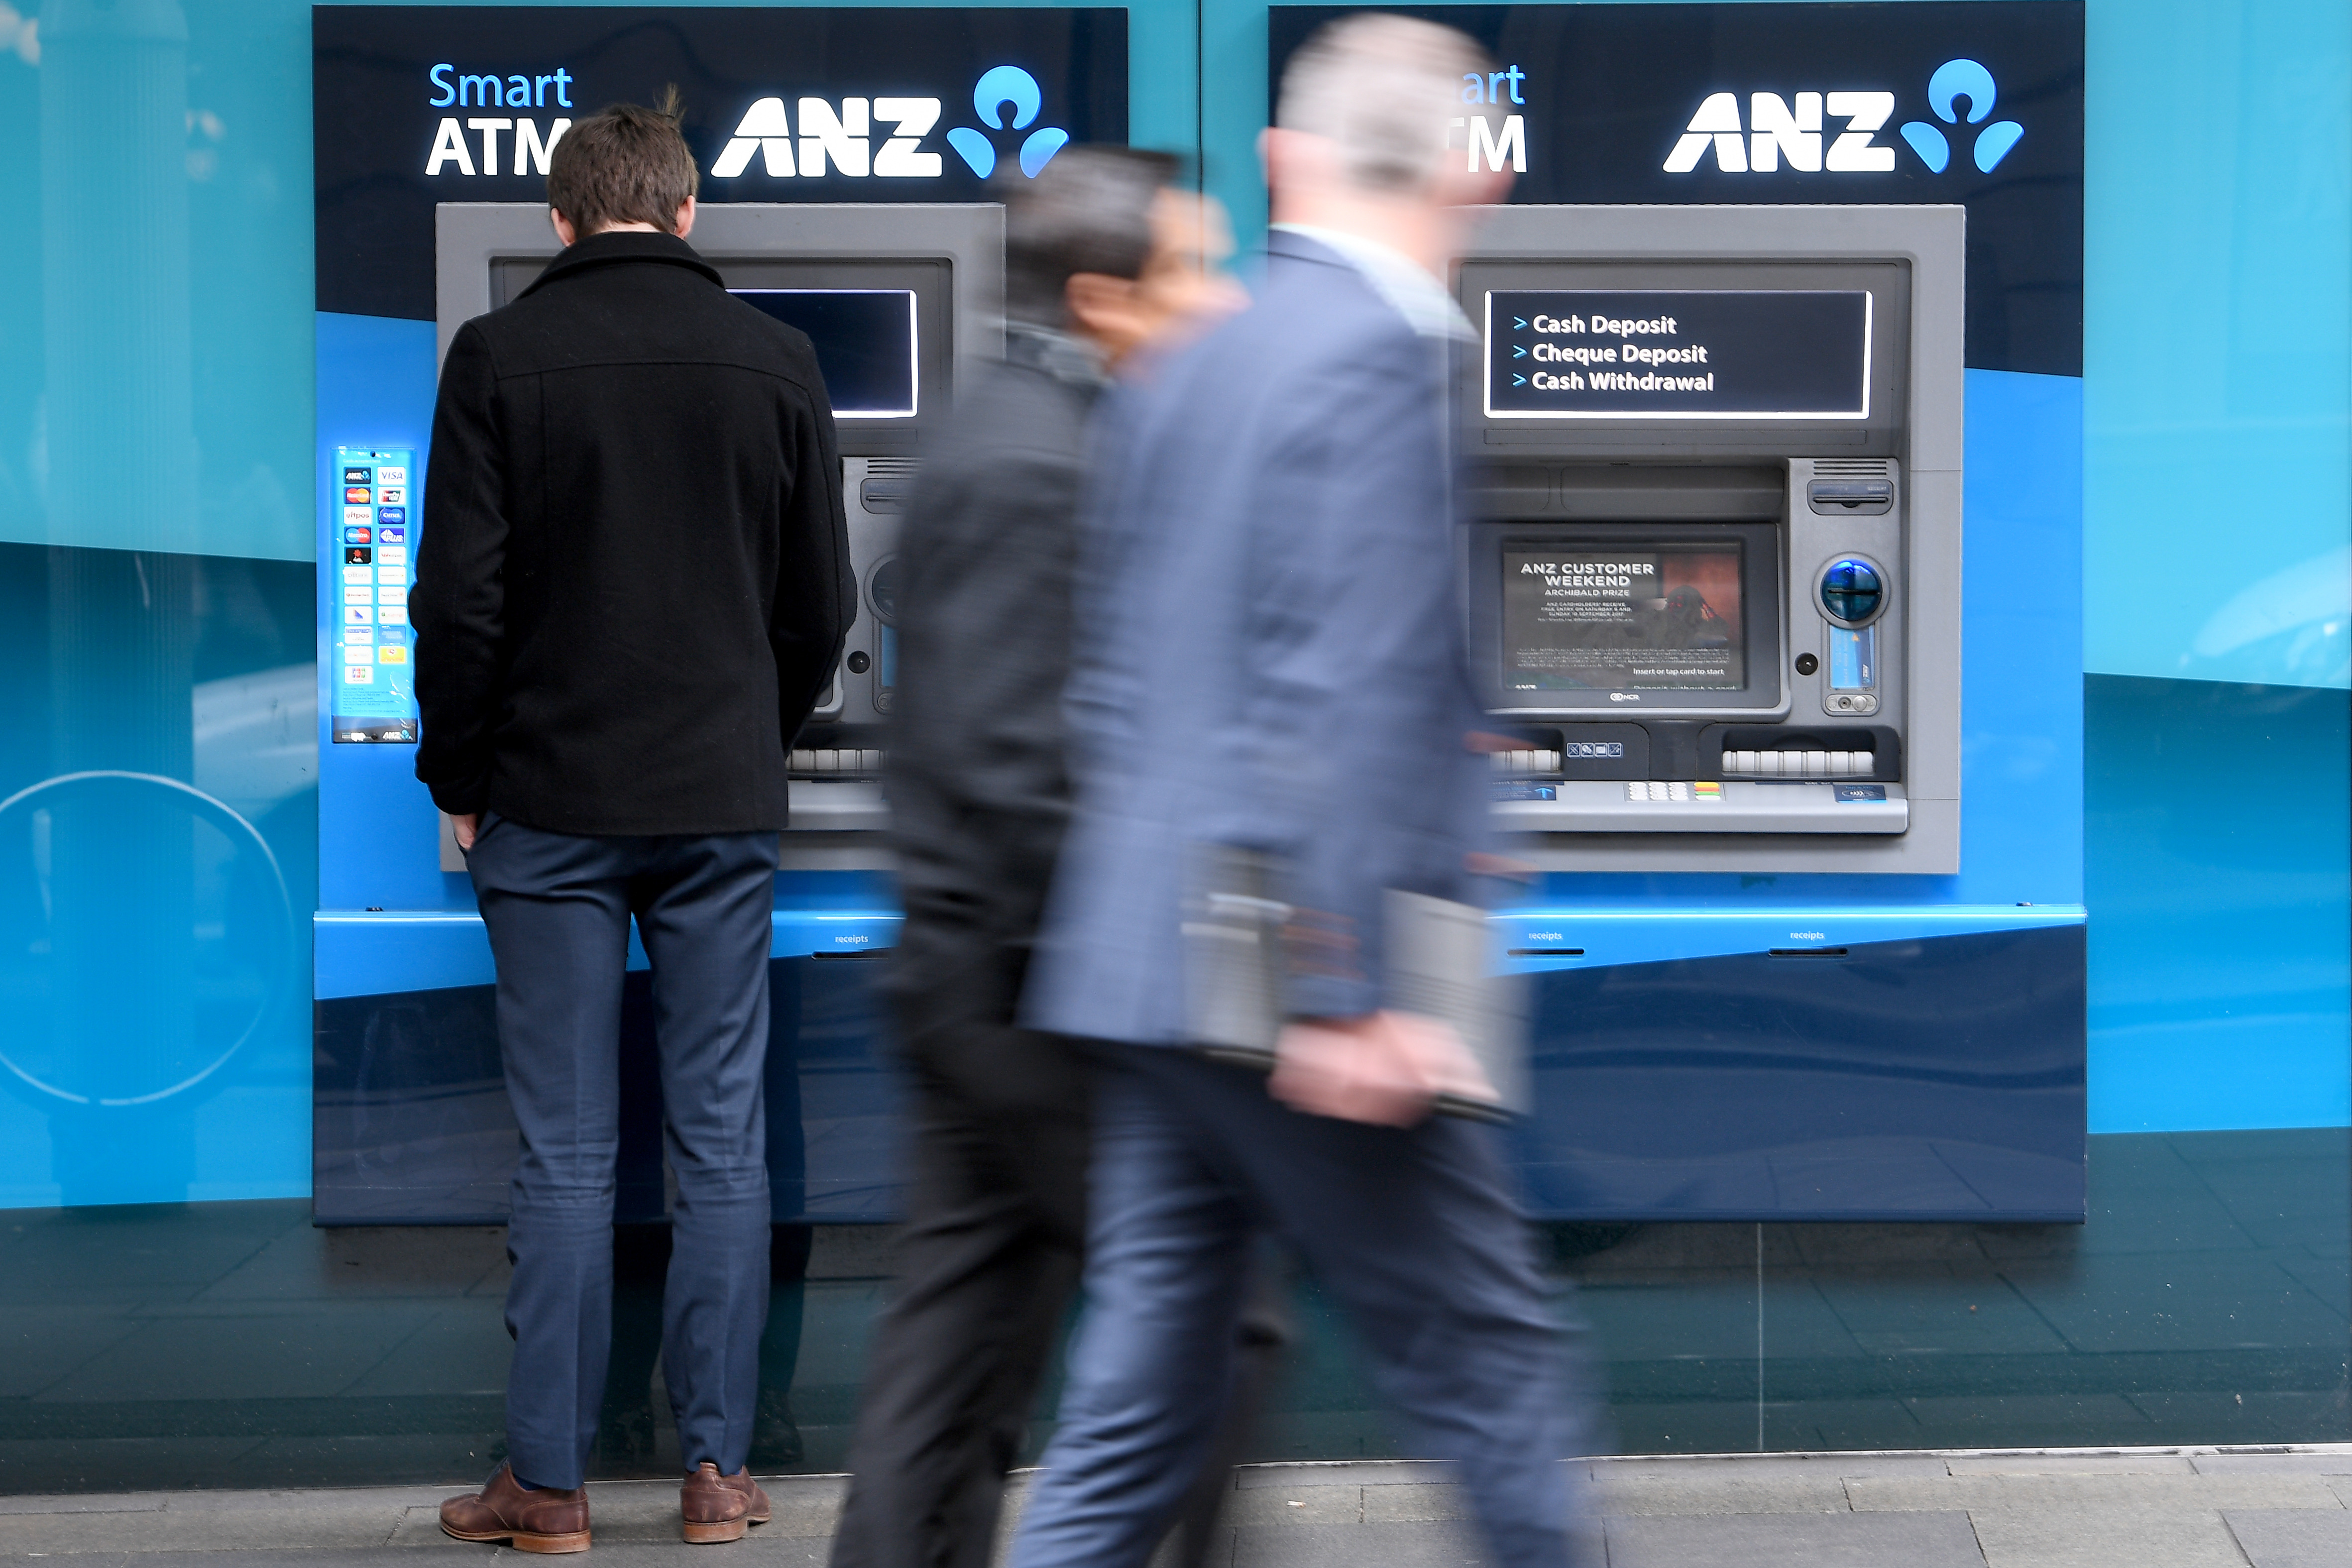 Three big banks decide to ditch ATM fees